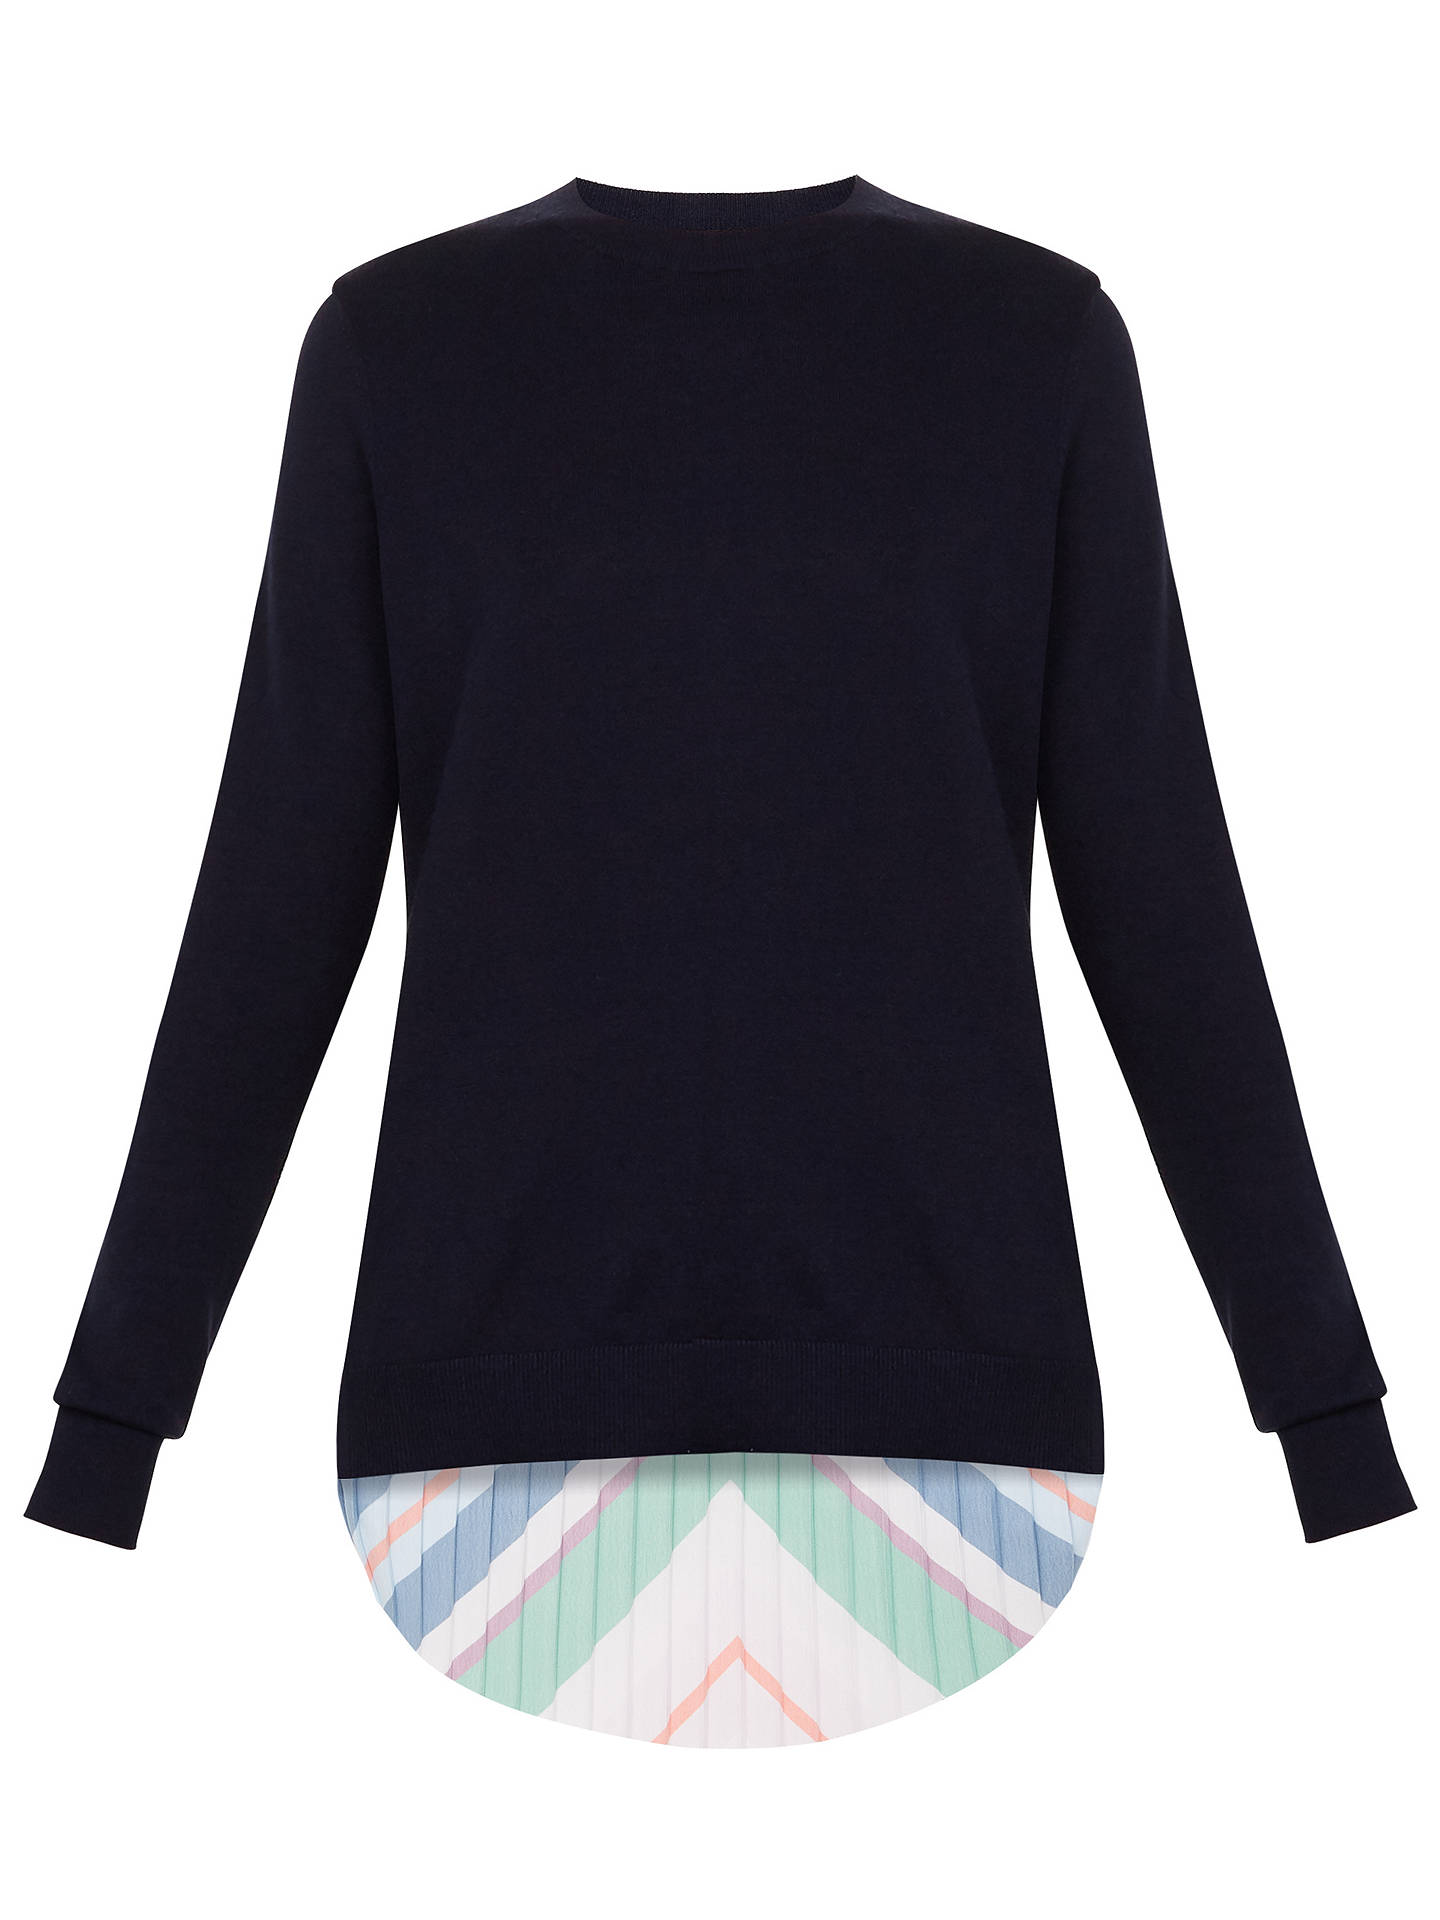 BuyTed Baker Jaymes Bay of Honour Pleat Back Jumper, Navy, 1 Online at johnlewis.com